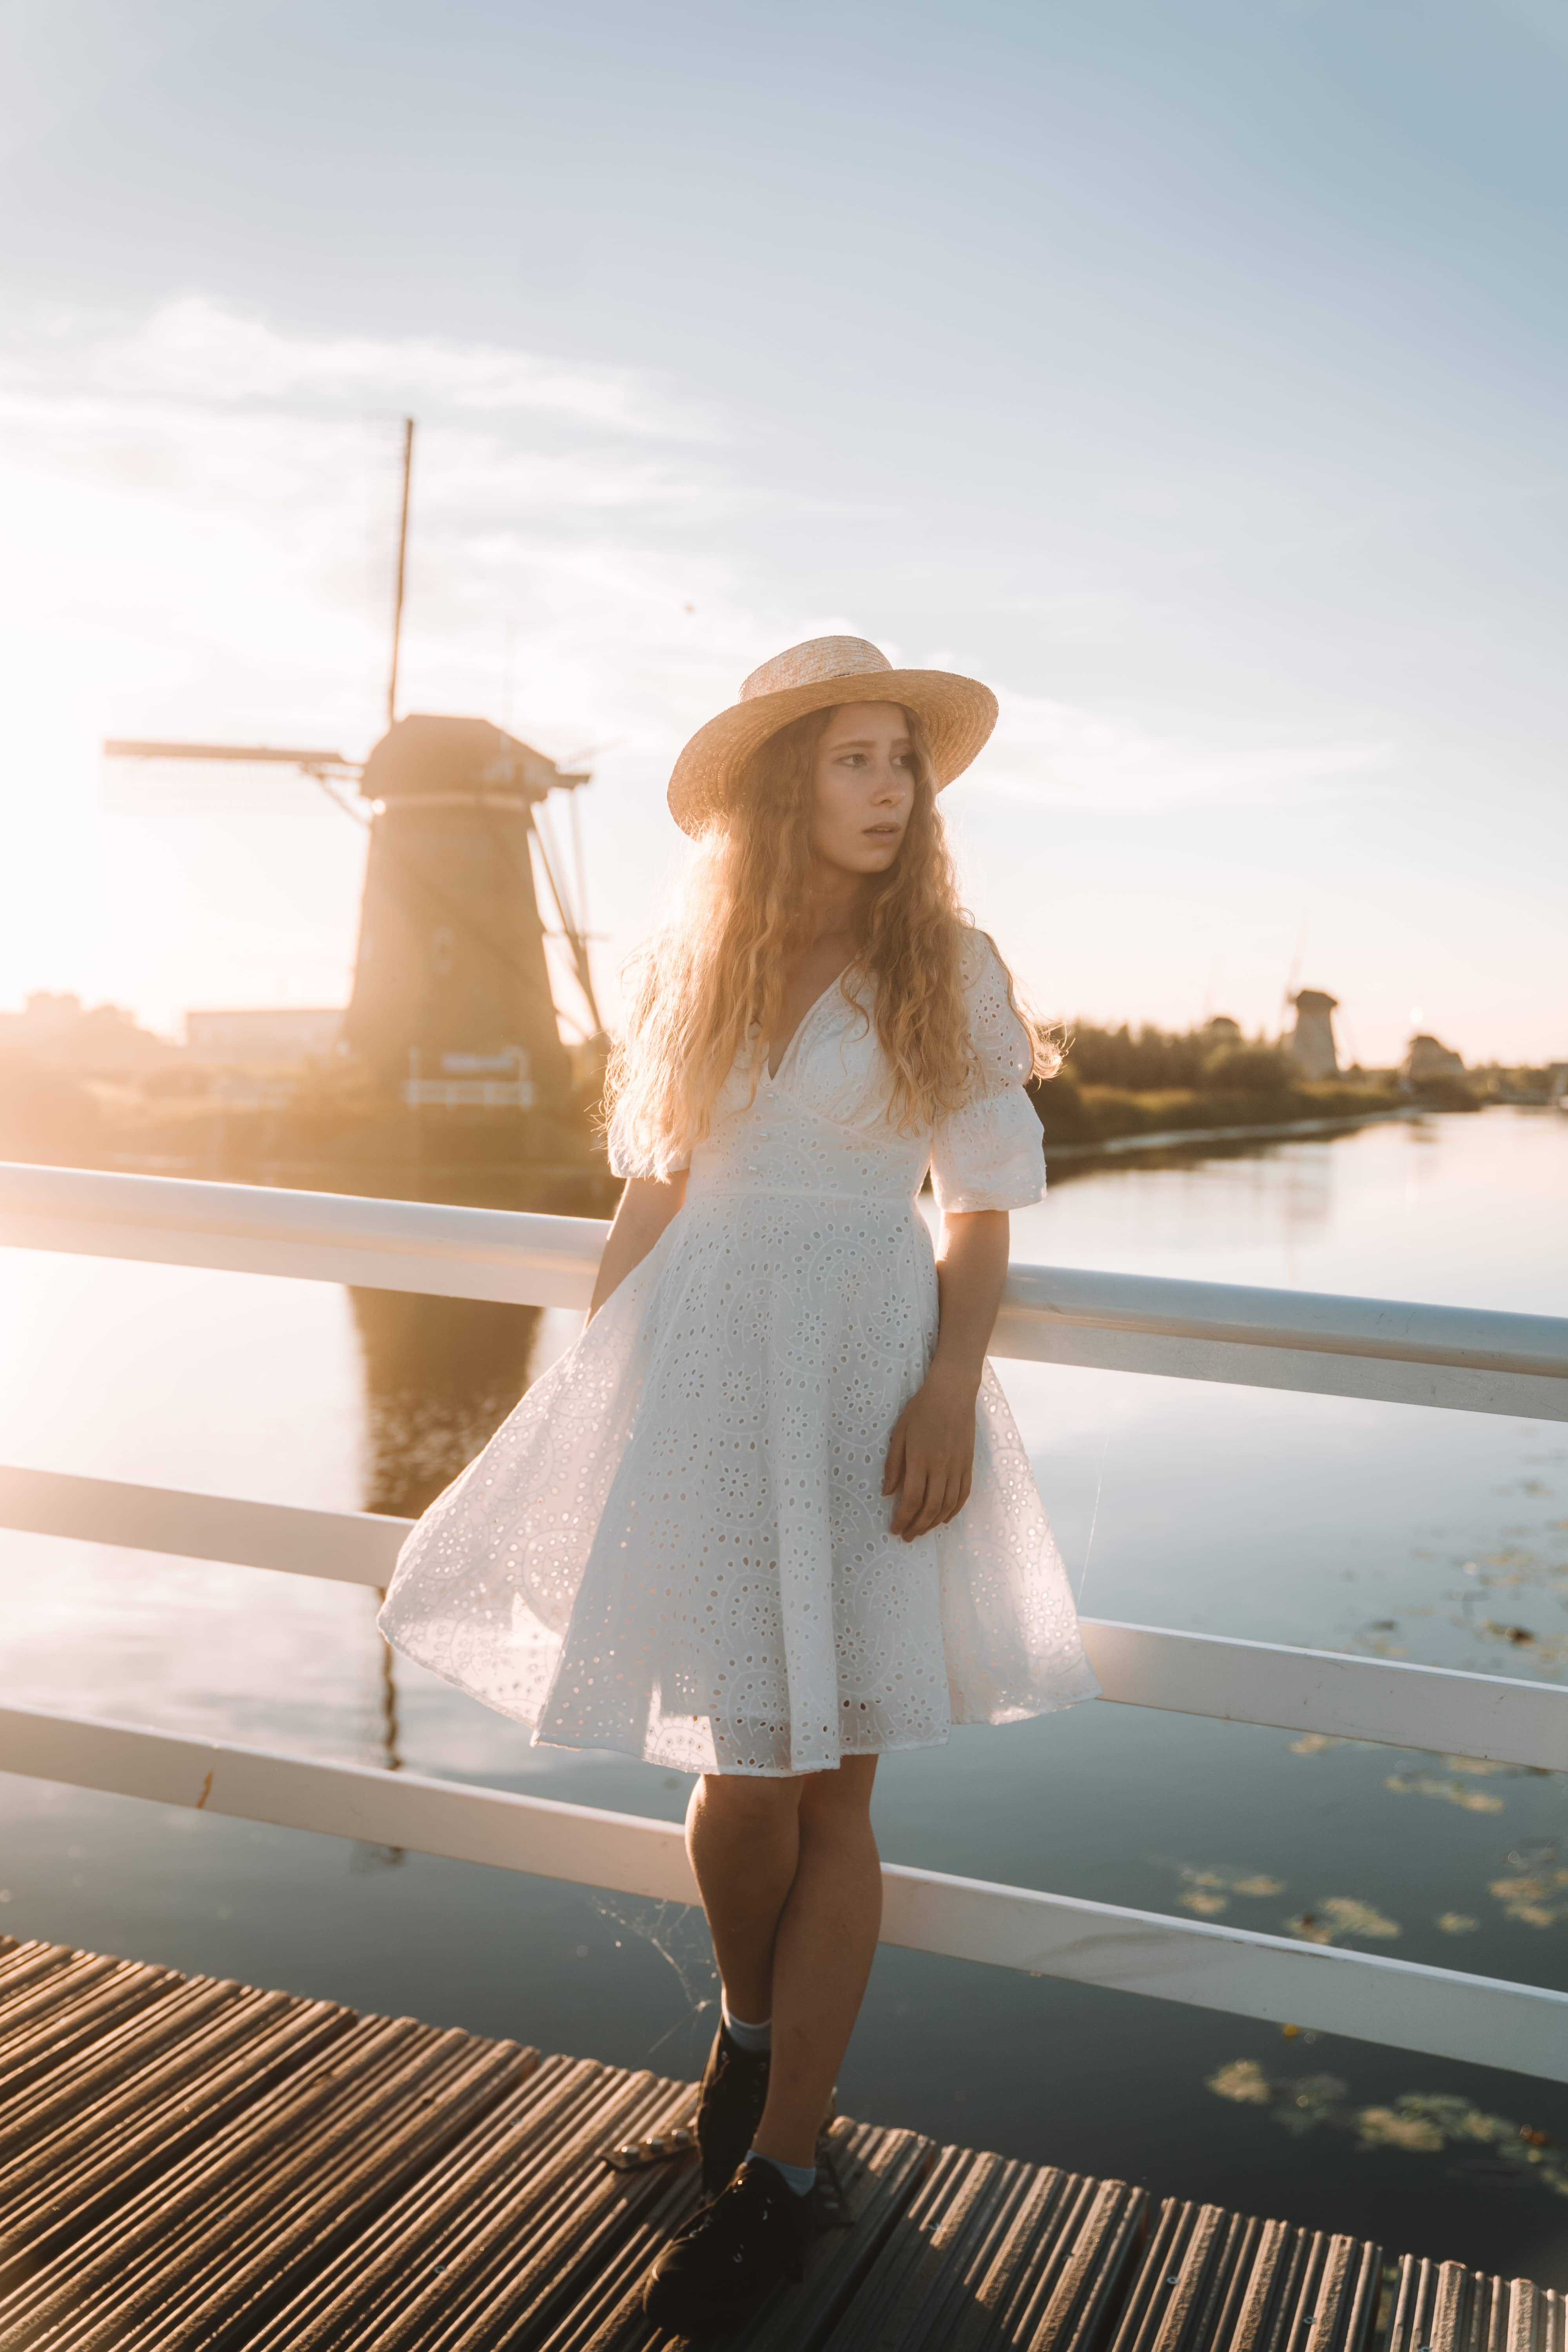 Girl in white dress wearing a hat standing in front of windmill while the sunset shines at her in golden light